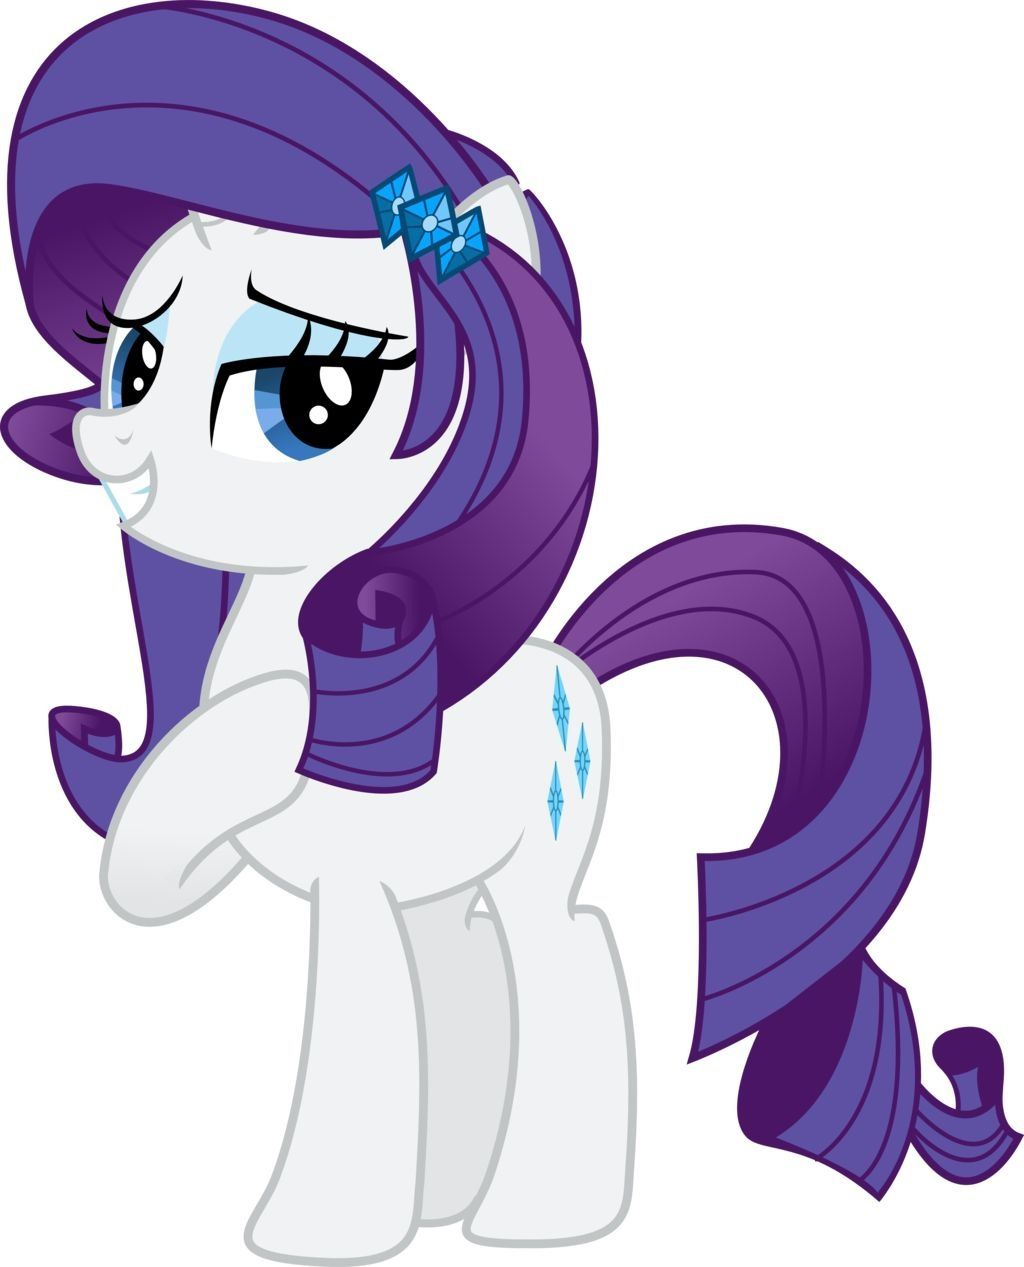 Rarity With Equestria Girls Mane Hair Beautiful 3 My Little Pony Pictures Pony Mlp My Little Pony